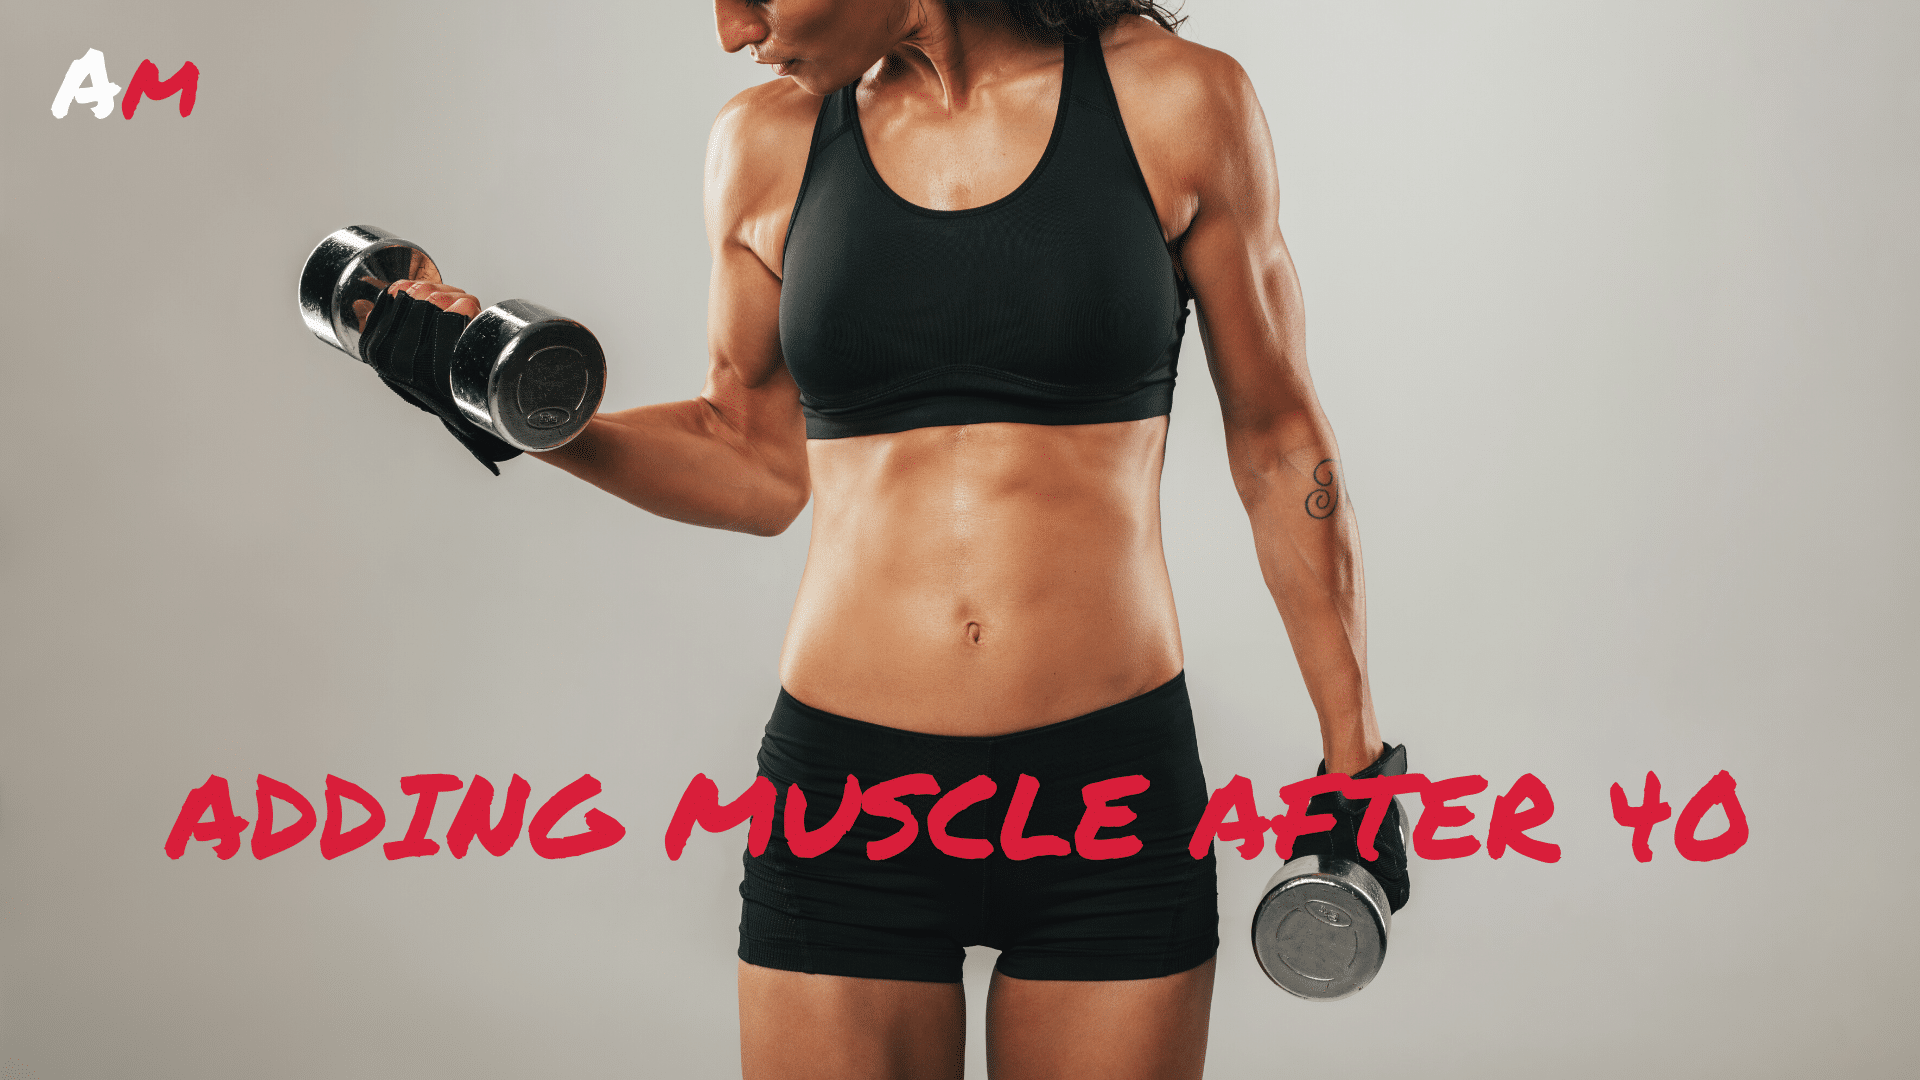 Female after 40 lifting weights